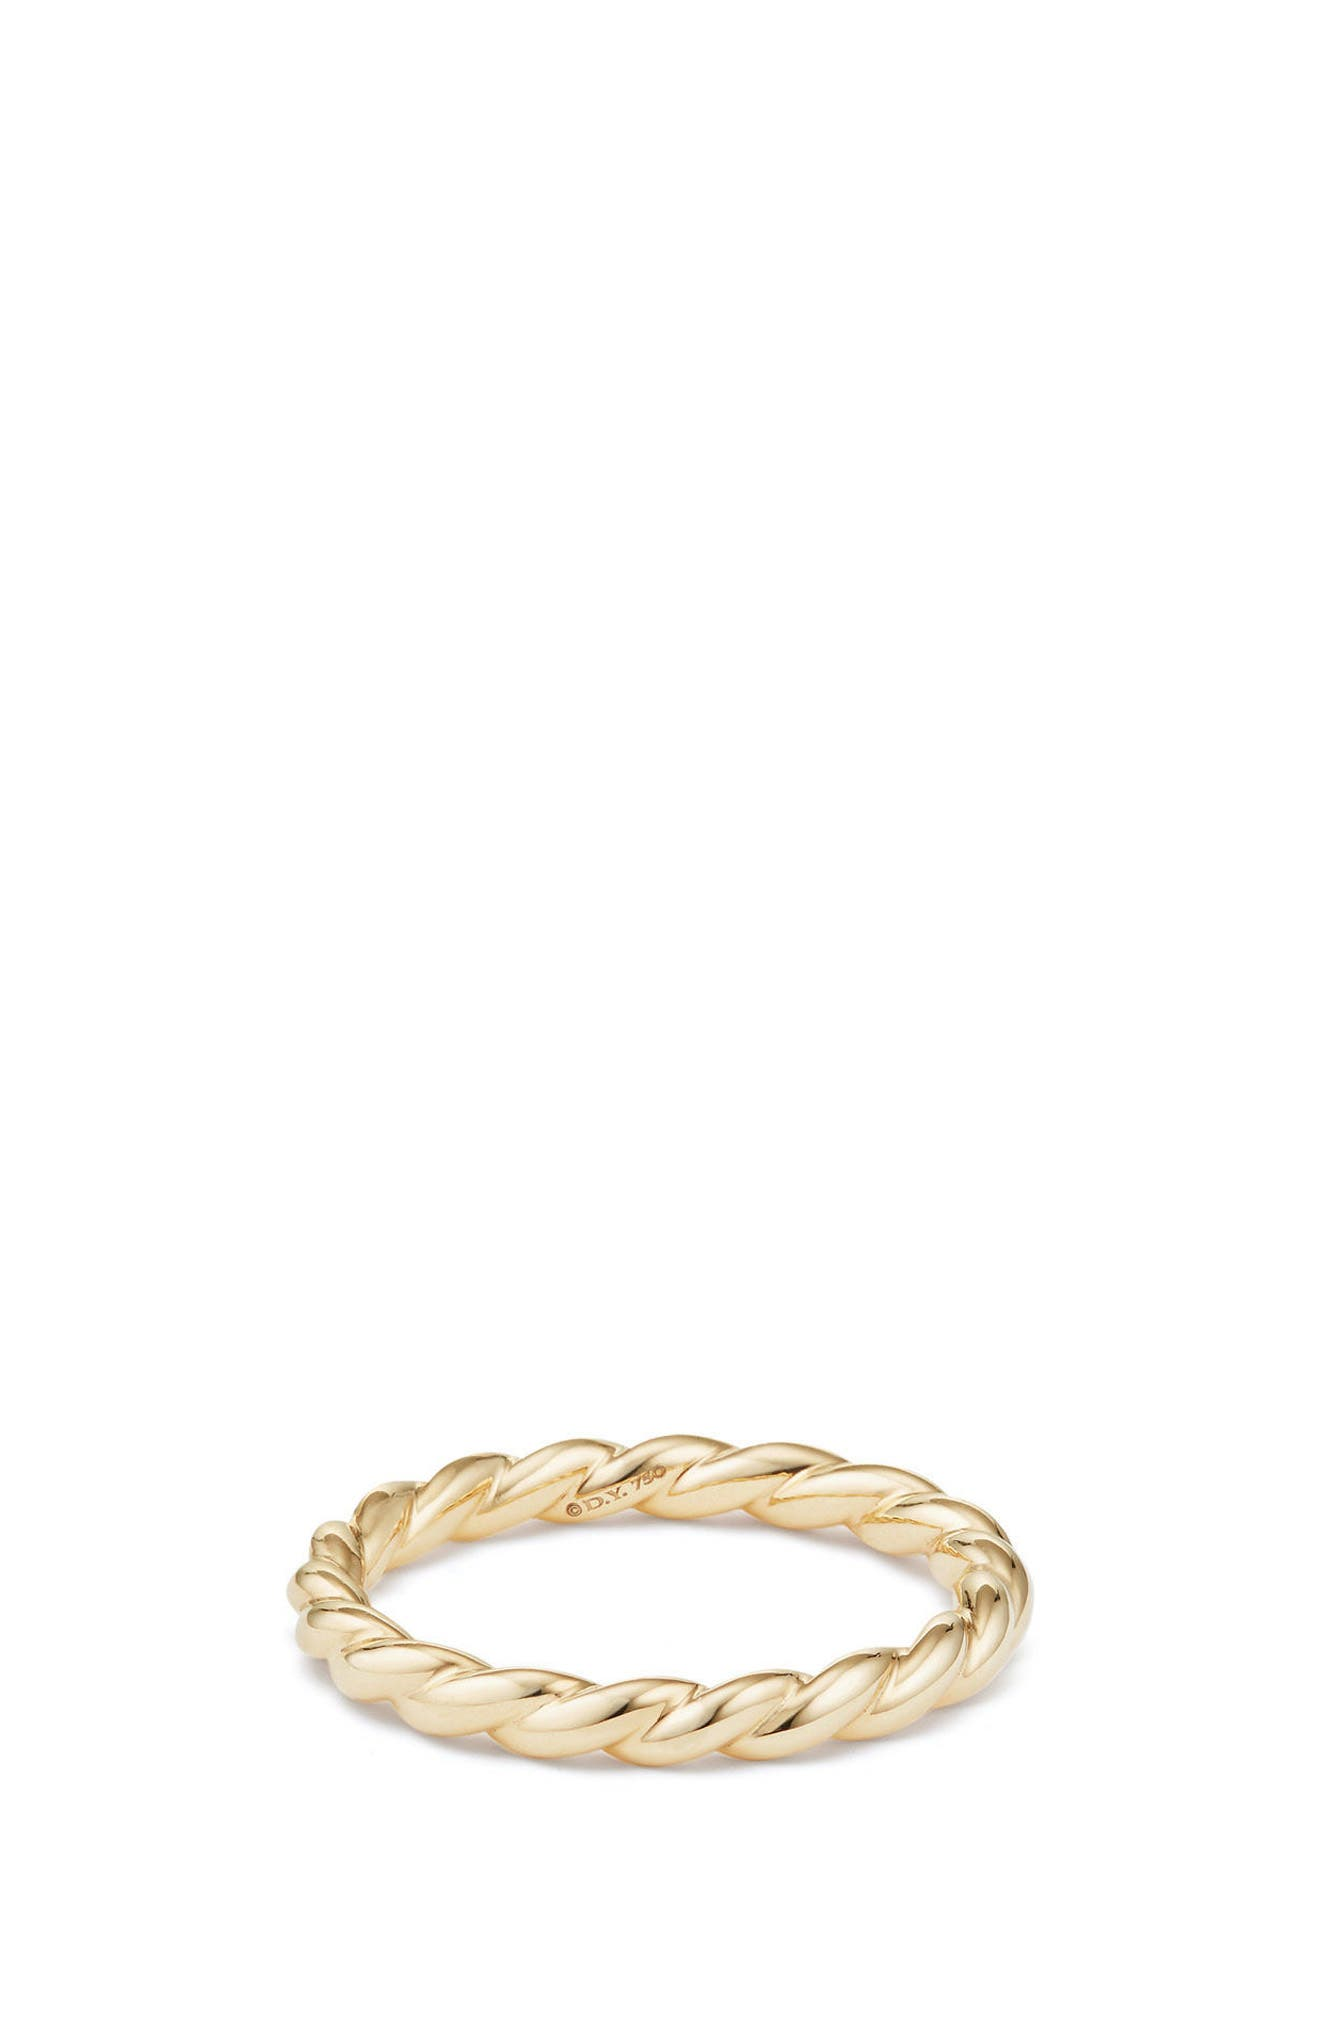 Paveflex Ring in 18K Gold, 2.7mm,                         Main,                         color, YELLOW GOLD